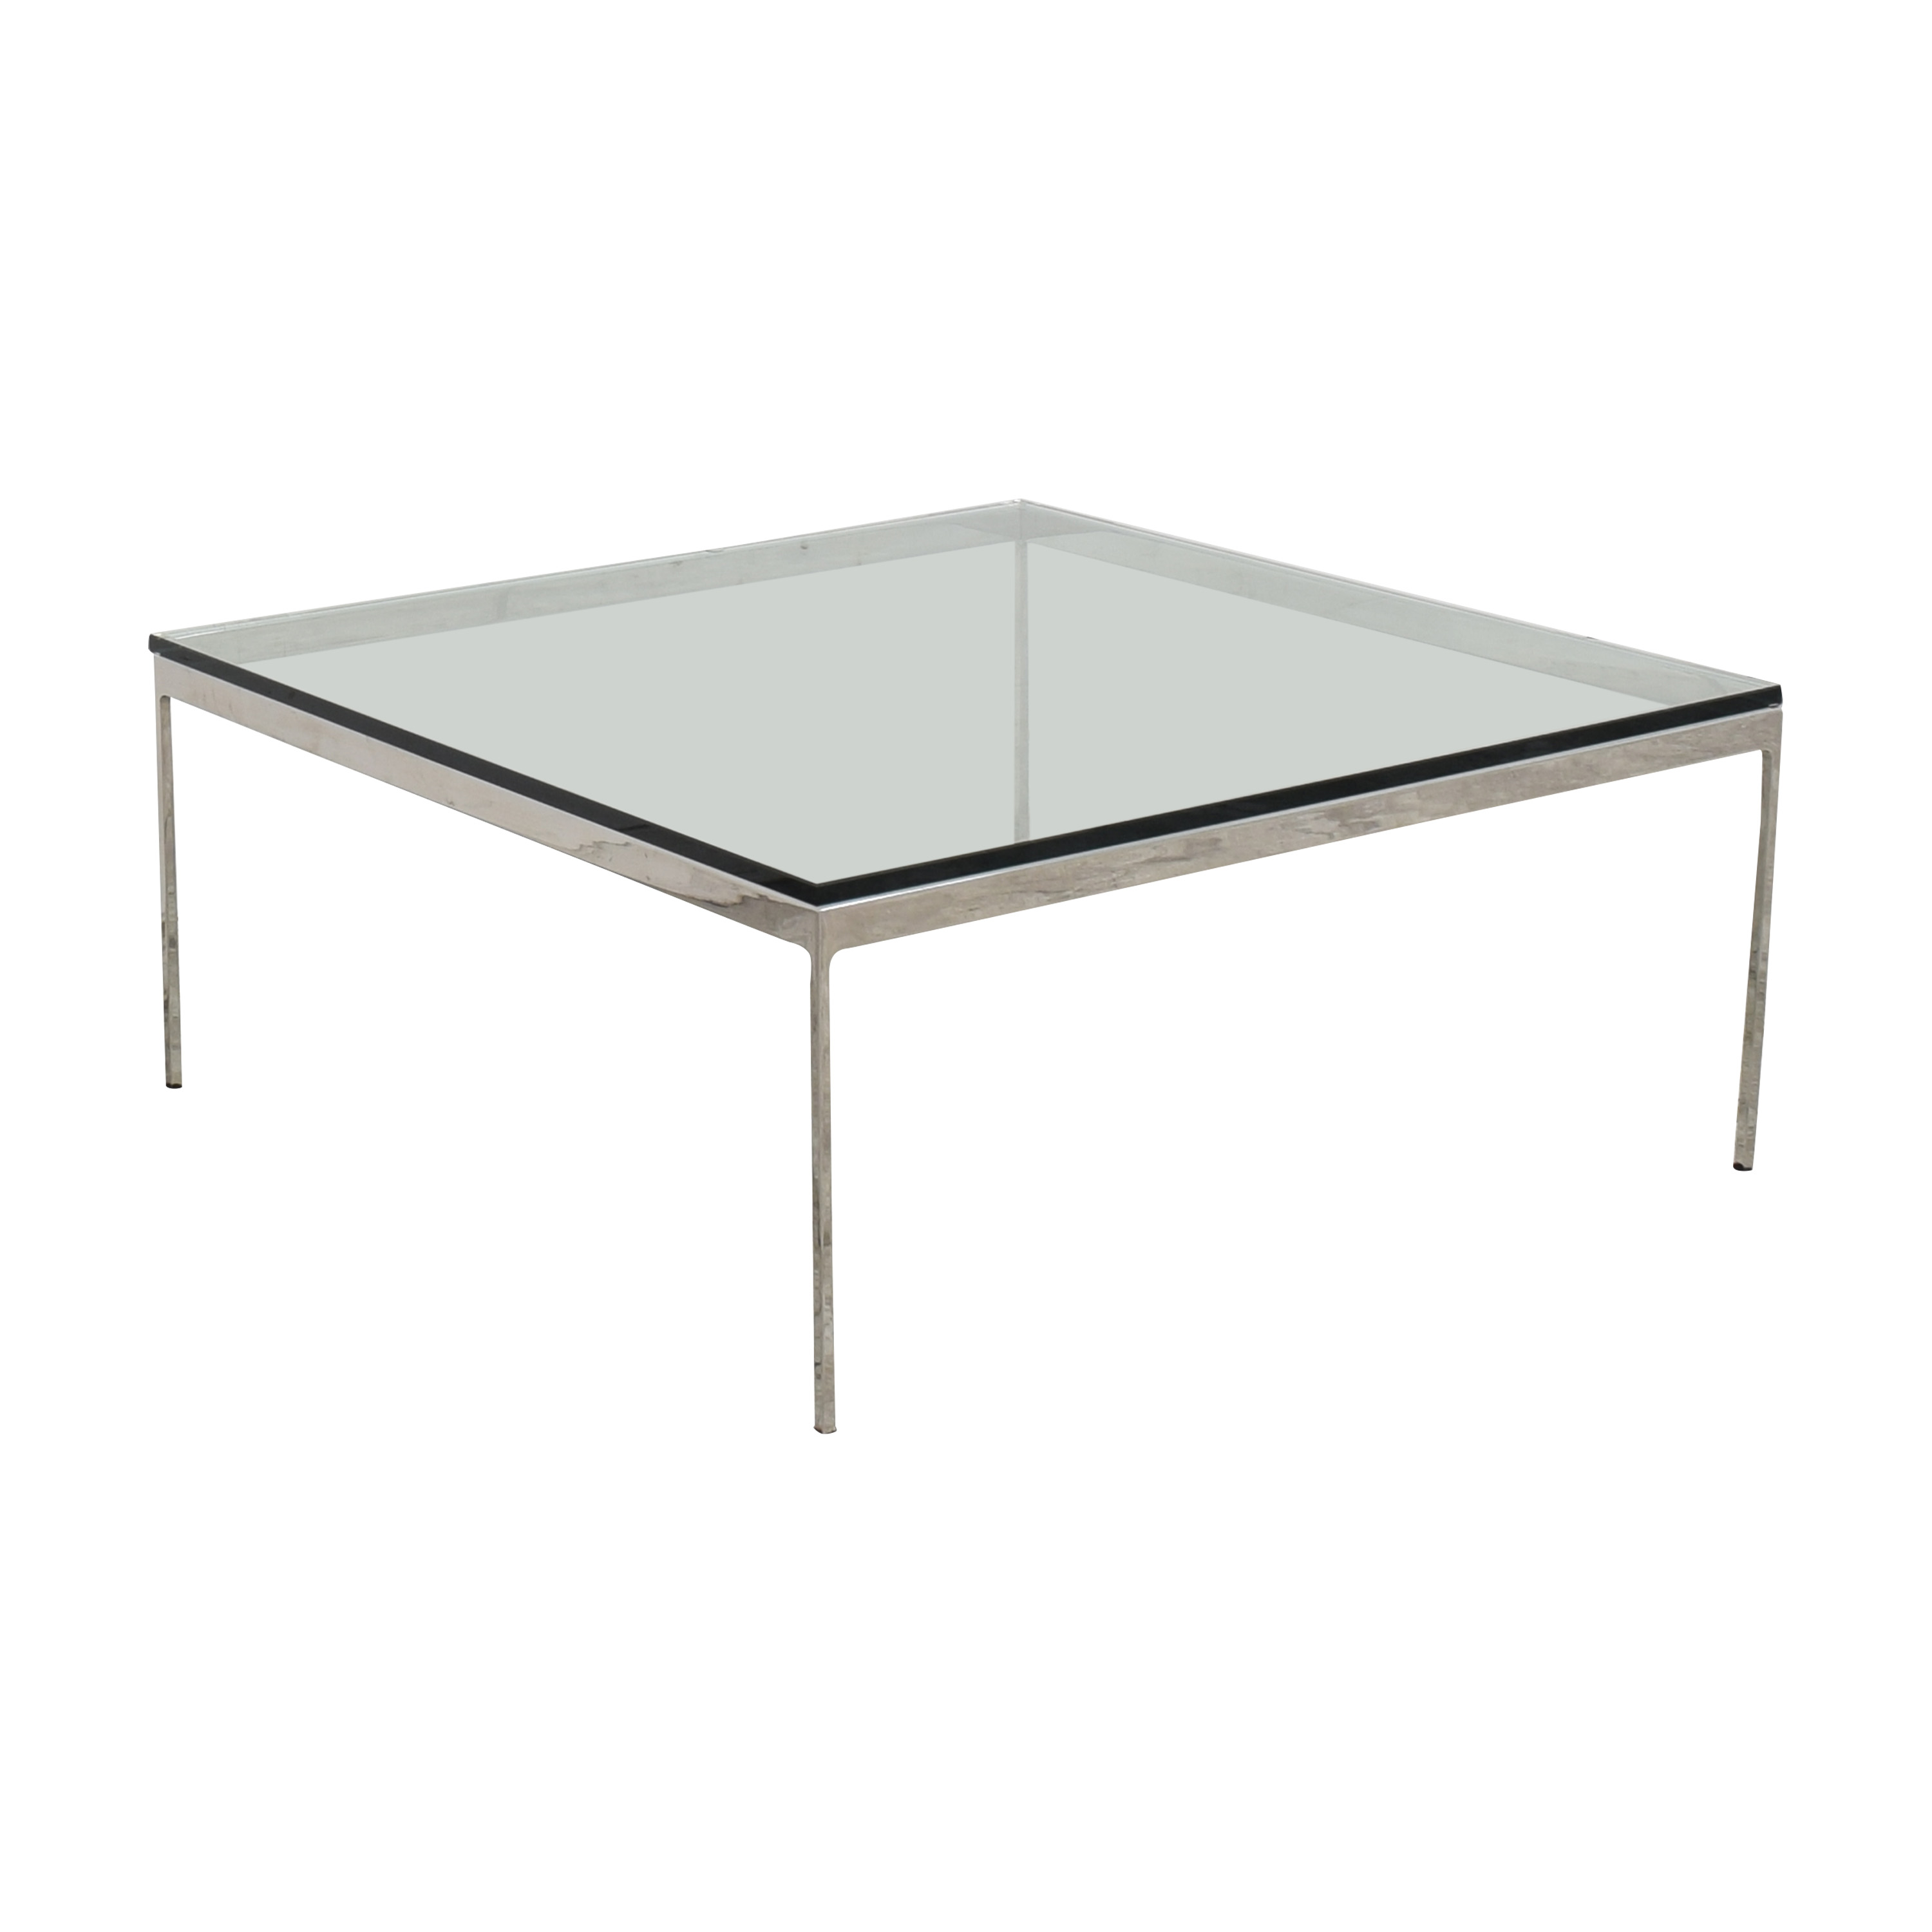 Square Top Coffee Table dimensions